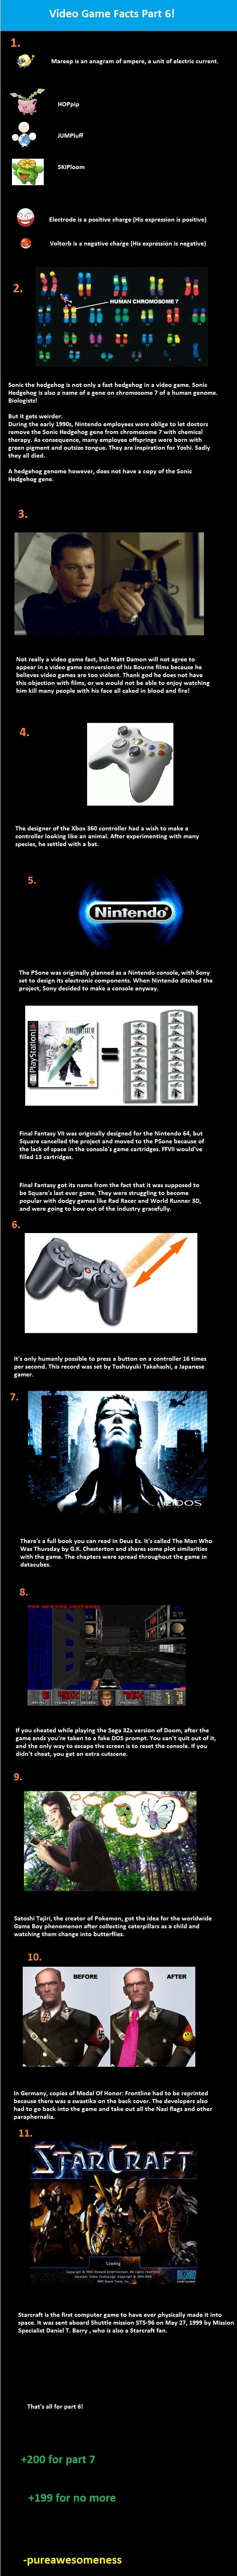 untitled - weird video game facts part 6!